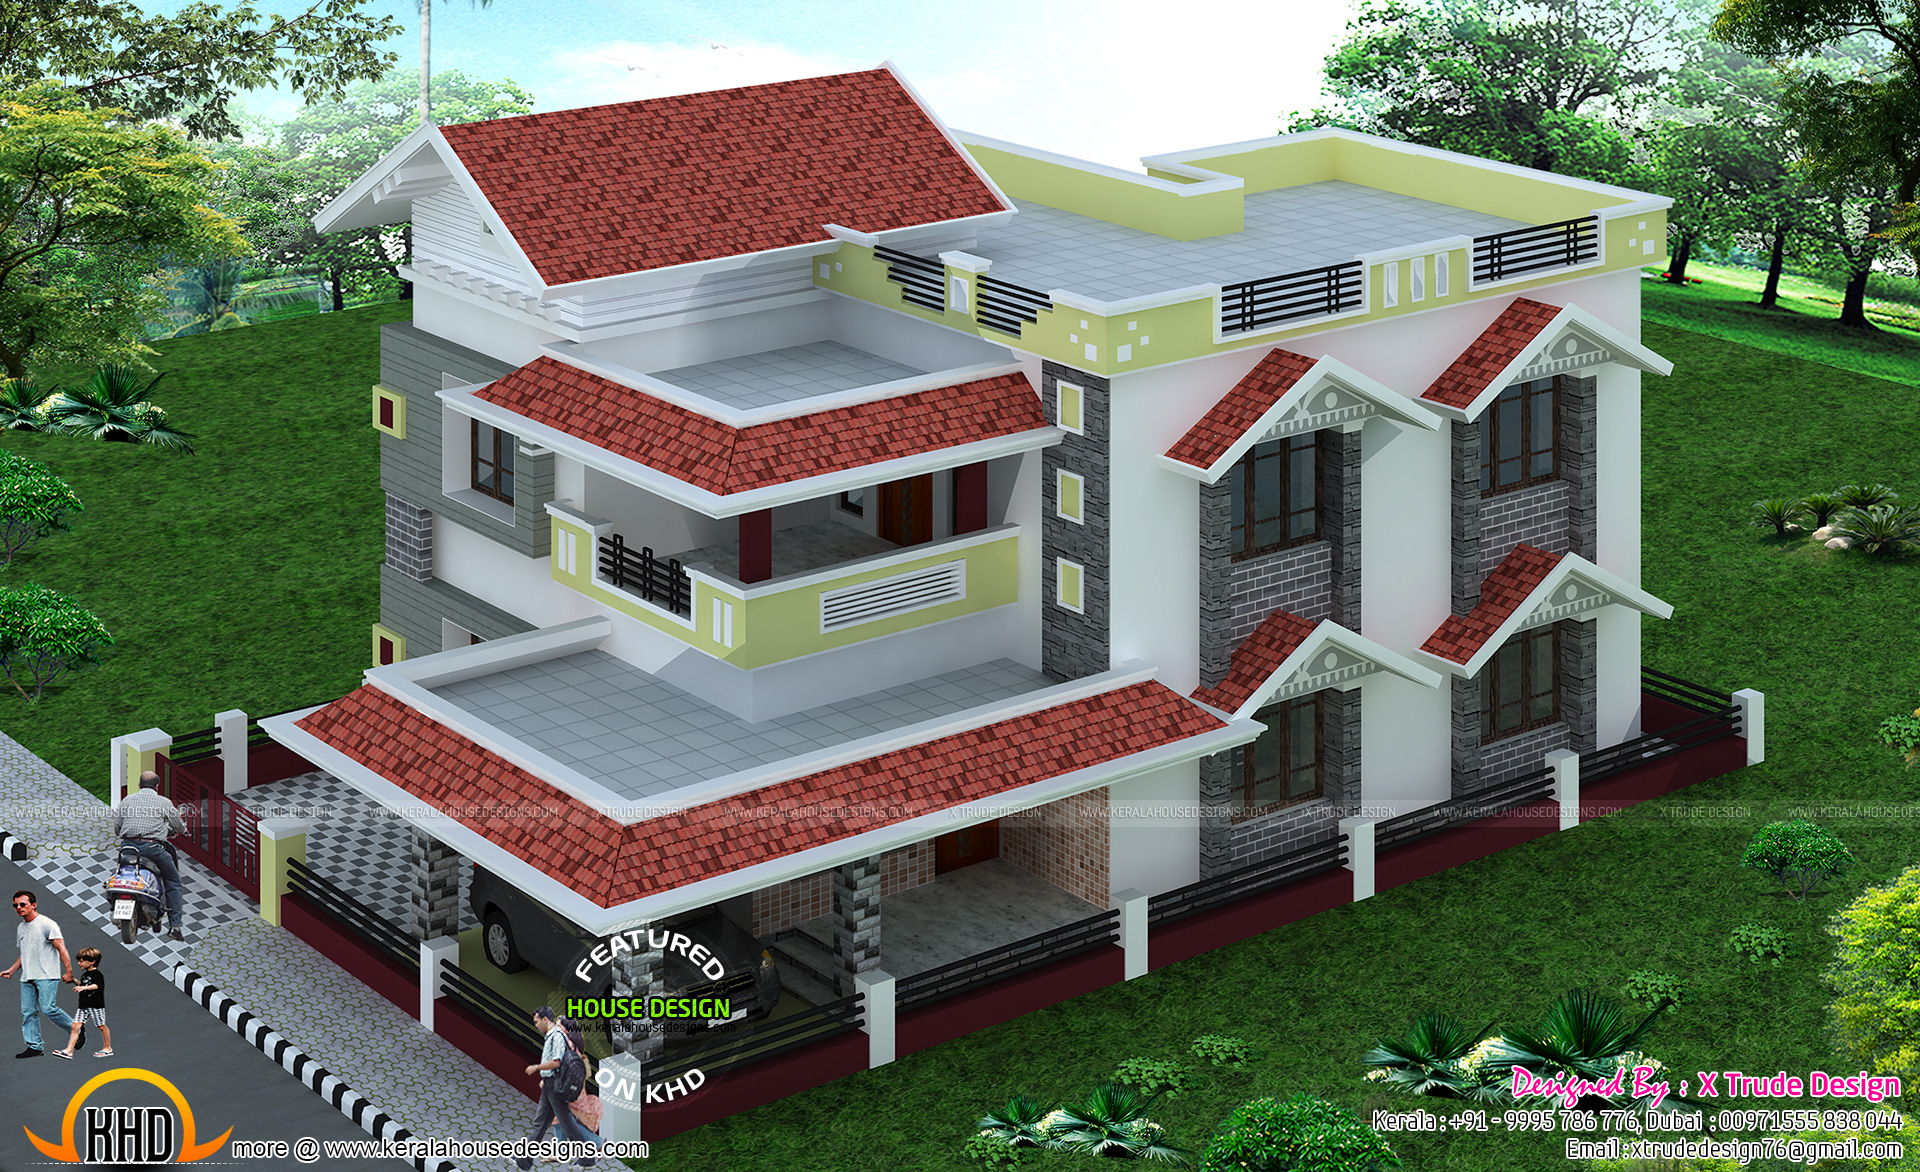 2581 sq ft house by x trude design kerala home design for View house plans online